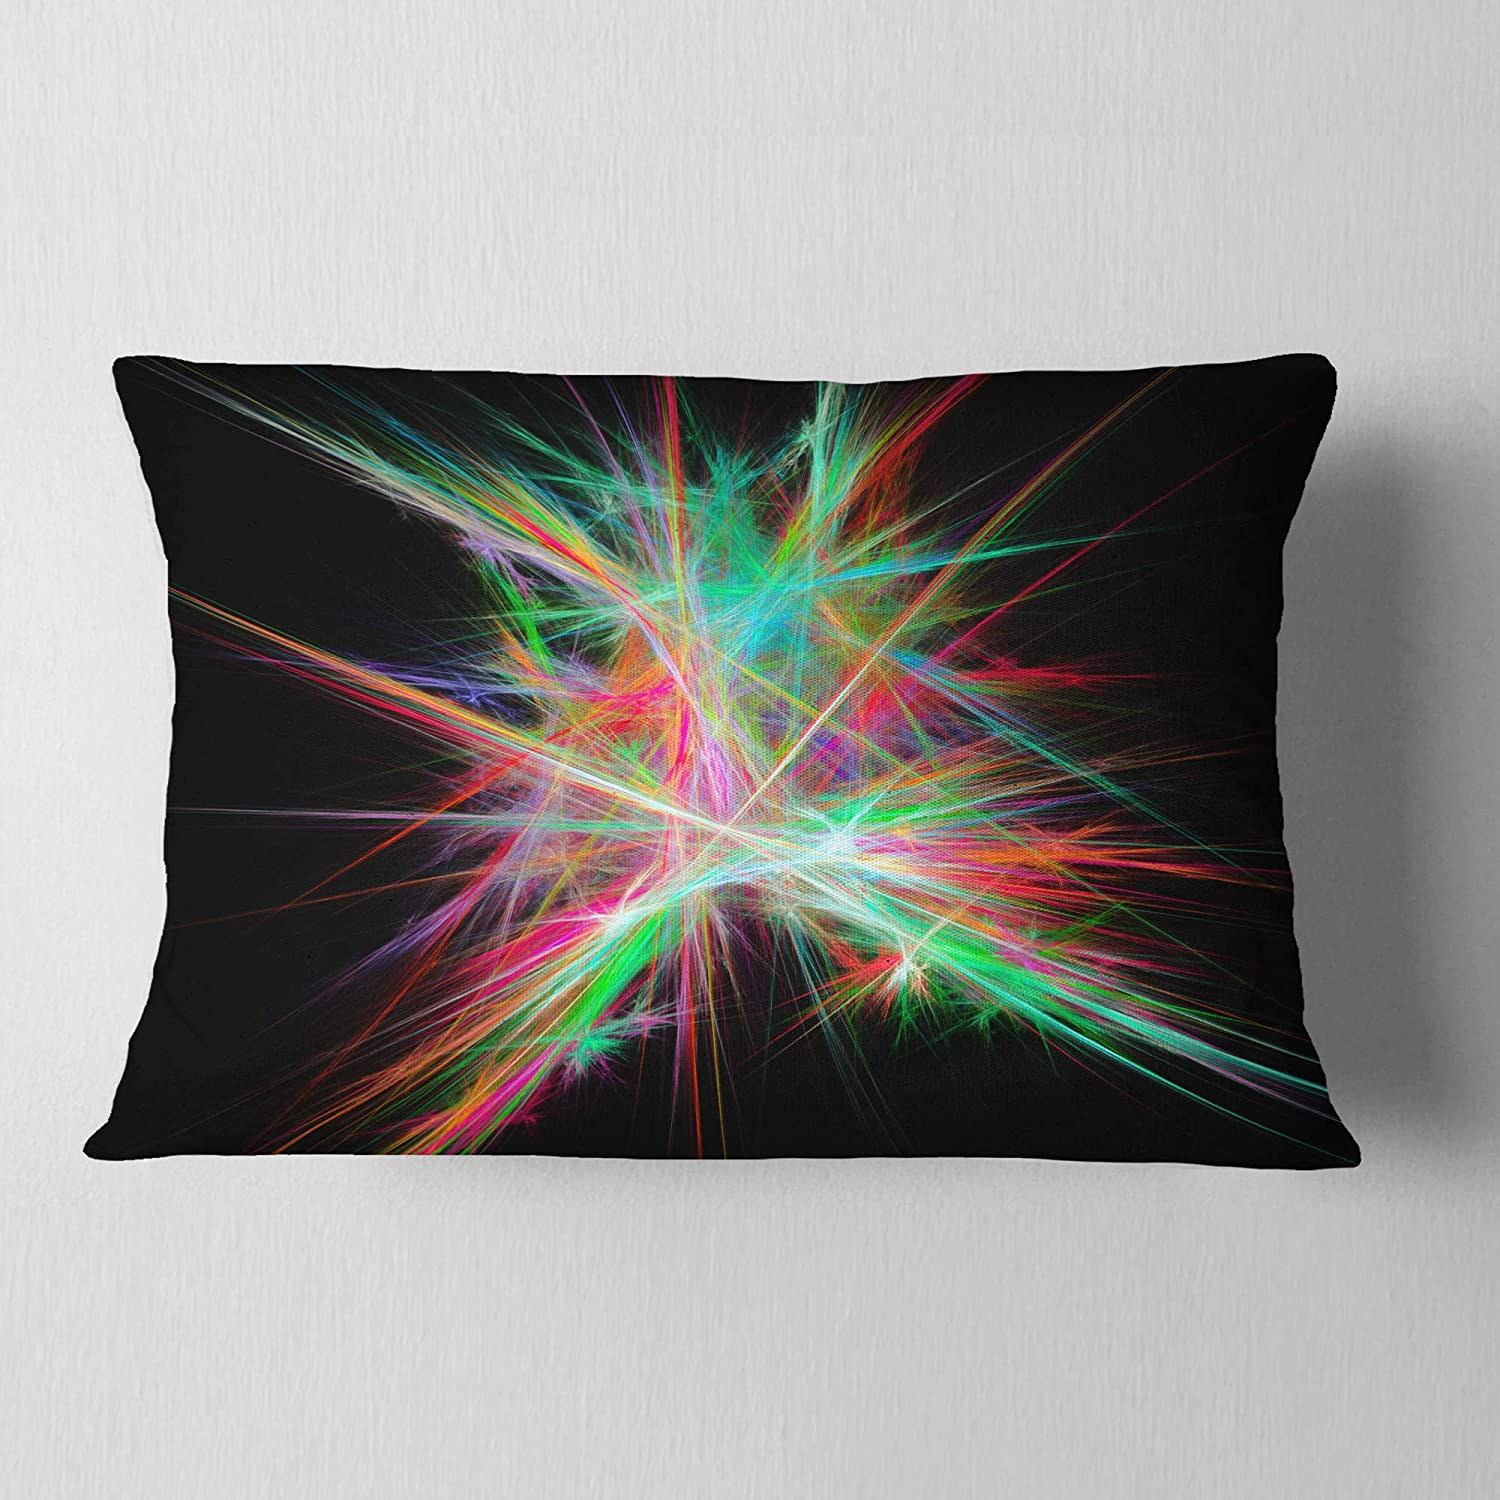 Designart CU16159-12-20 Green Red Spectrum of Light' Abstract Lumbar Cushion Cover for Living Room, Sofa Throw Pillow, 12 in. x 20 in